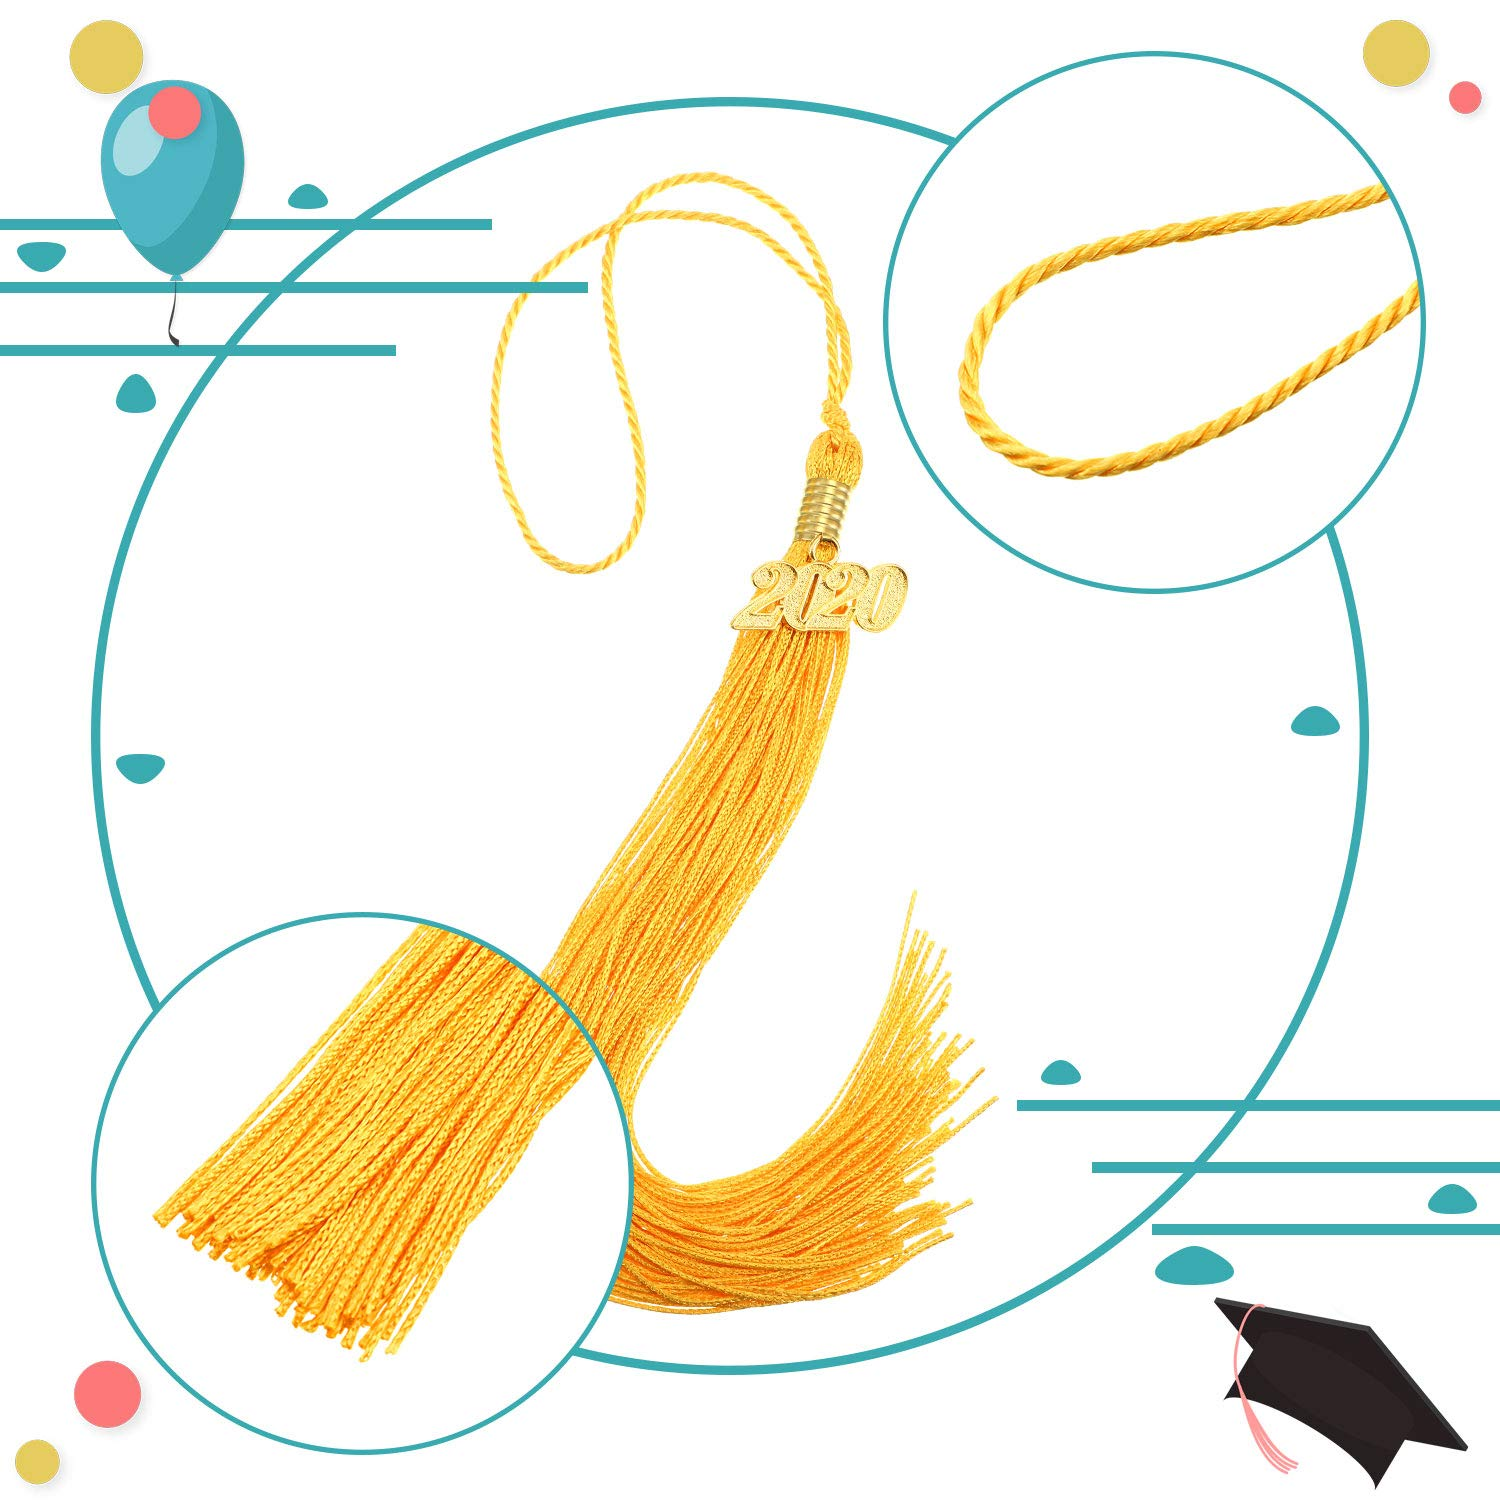 Hicarer 6 Pieces Graduation Tassels with 2020 Year Gold Date Pendants Colorful Graduation Cap Tassels for Graduation Parties Blue and Gold